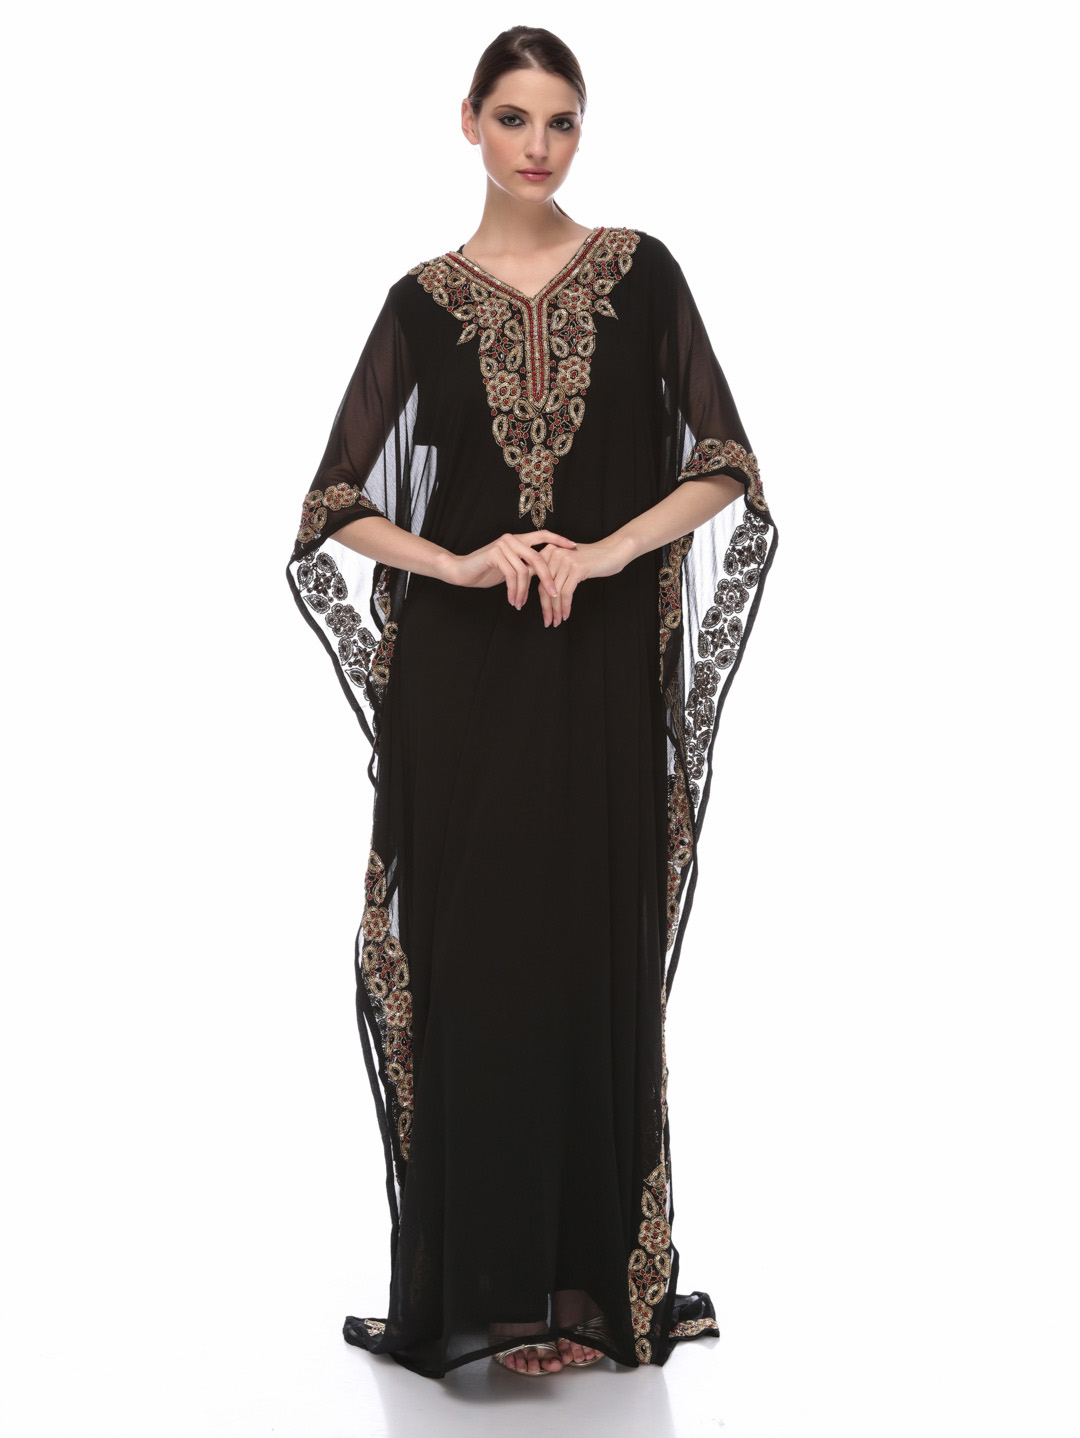 Jalabiya designs 2013 arabic kaftan dresses collection for girls